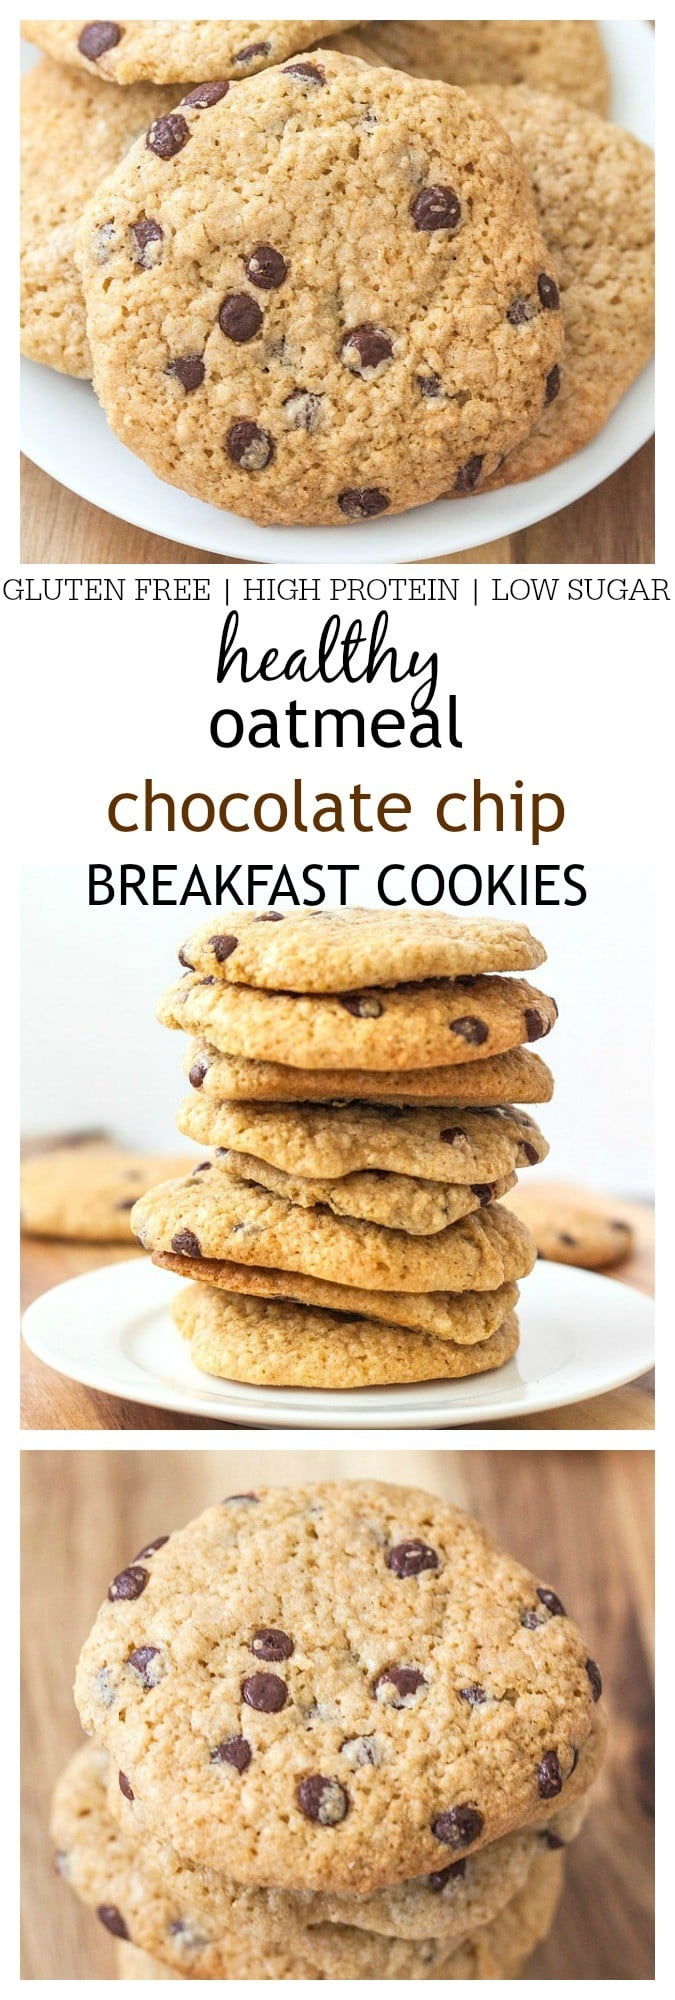 Healthy Oatmeal Chocolate Chip Breakfast Cookies